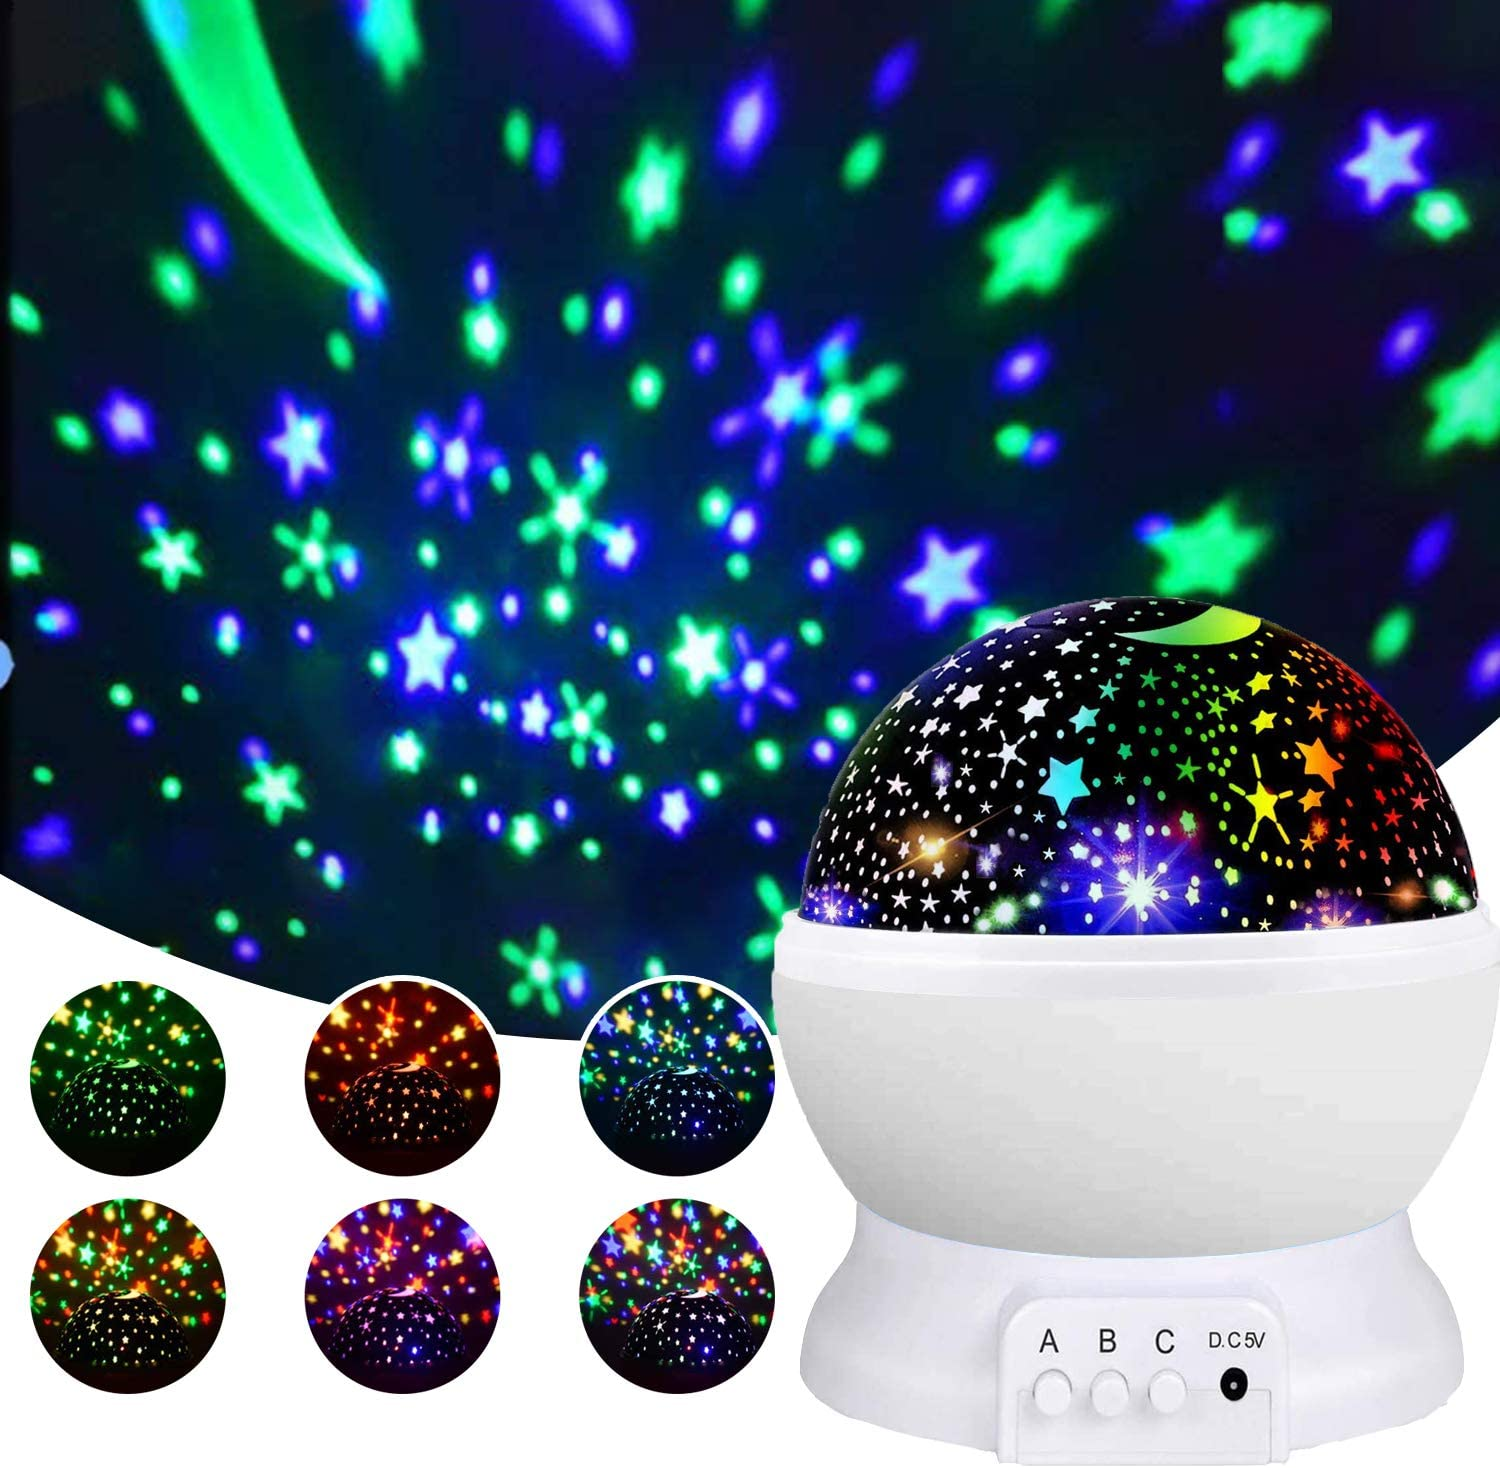 Homcasito Night Light for Kids Star Projector Baby Night Light 360 Degree Rotating Best Gifts for 3-12 Year Old Boys Girls